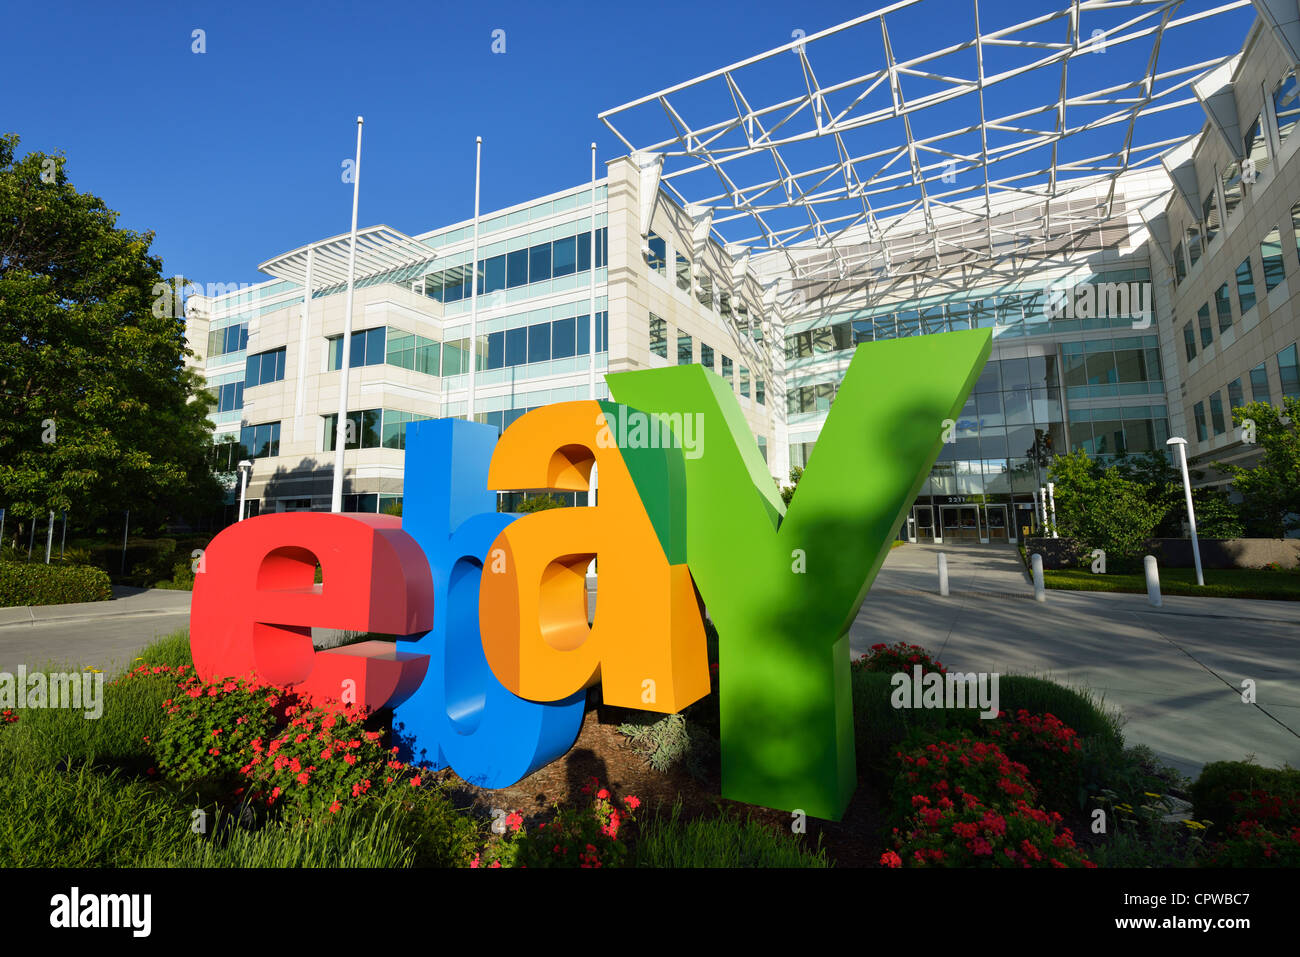 Headquarters of ebay and Paypal Incorporated, San Jose CA - Stock Image